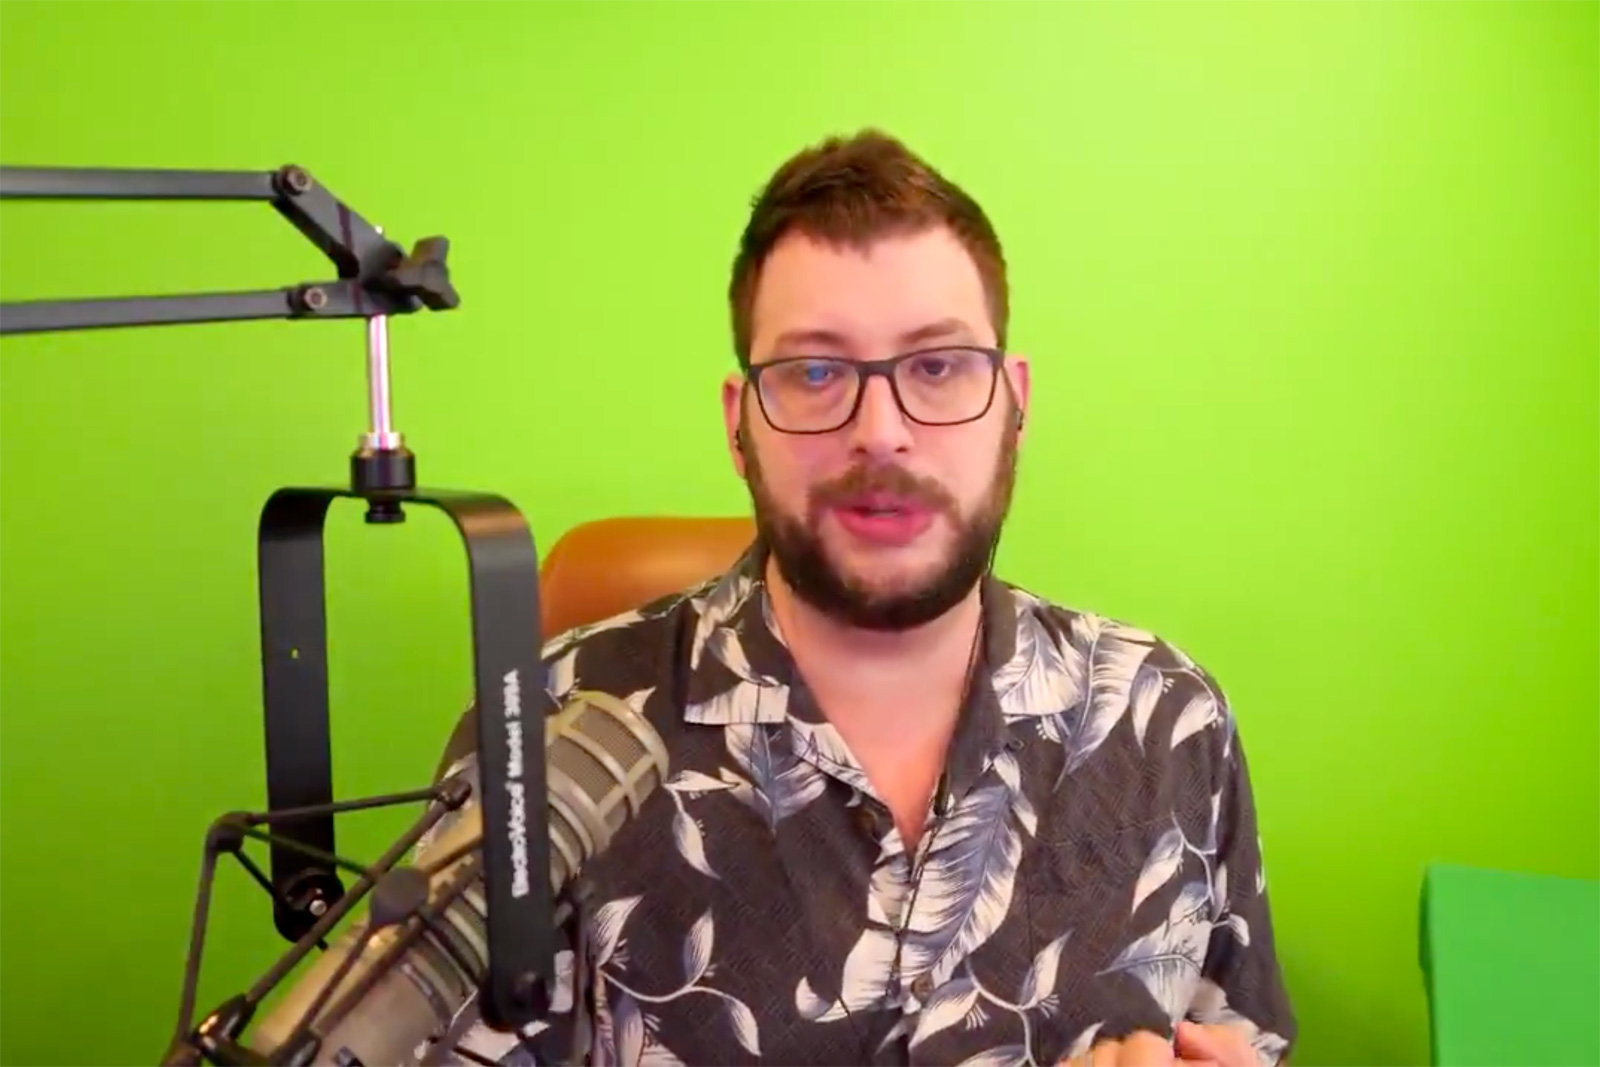 Gothalion is the latest big Twitch streamer to switch to Mixer | DeviceDaily.com